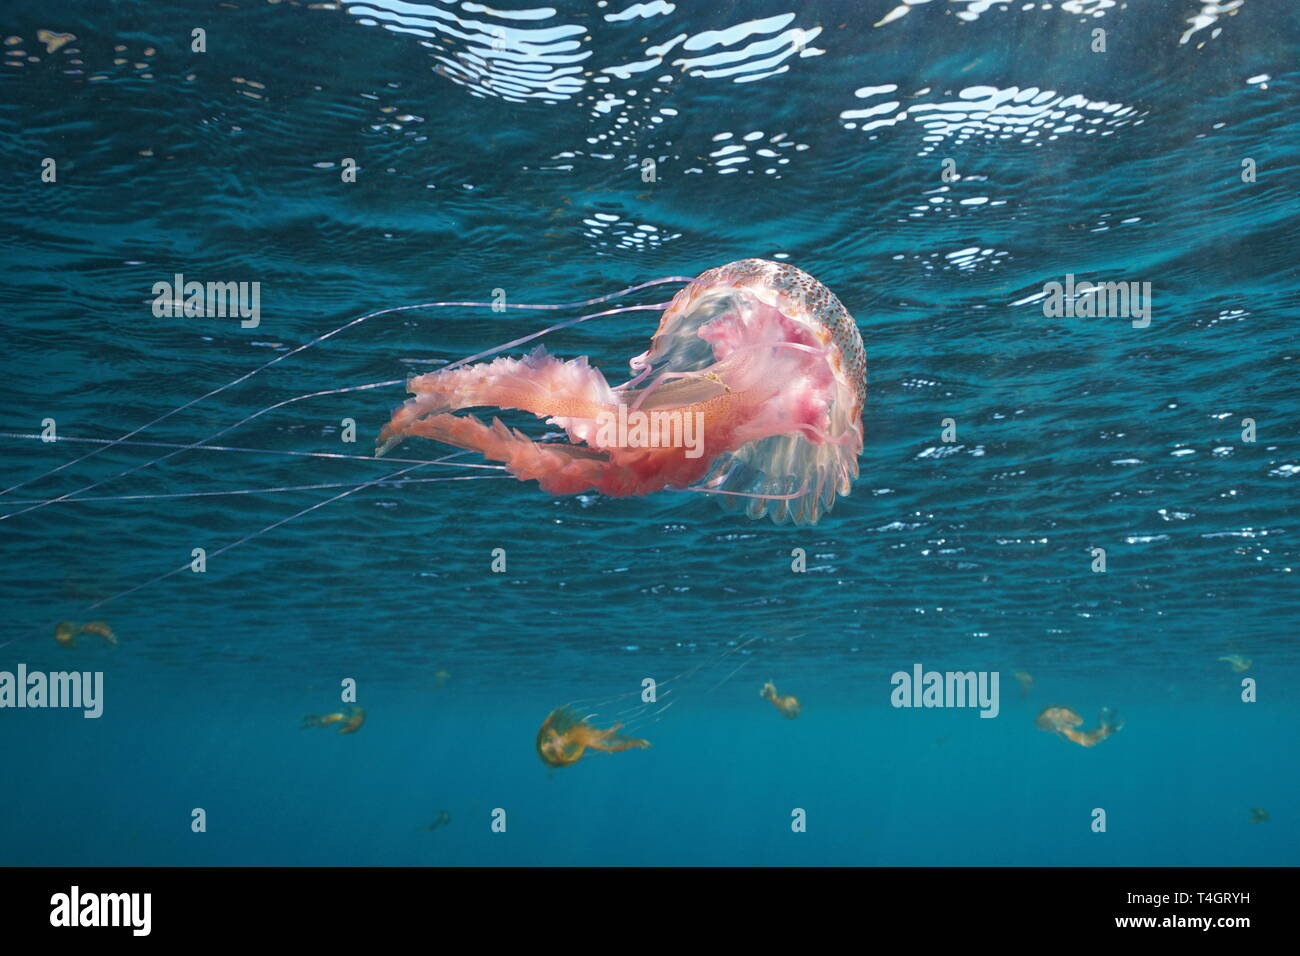 Jellyfish below water surface, Mauve stinger Pelagia noctiluca, in Mediterranean sea, Spain - Stock Image